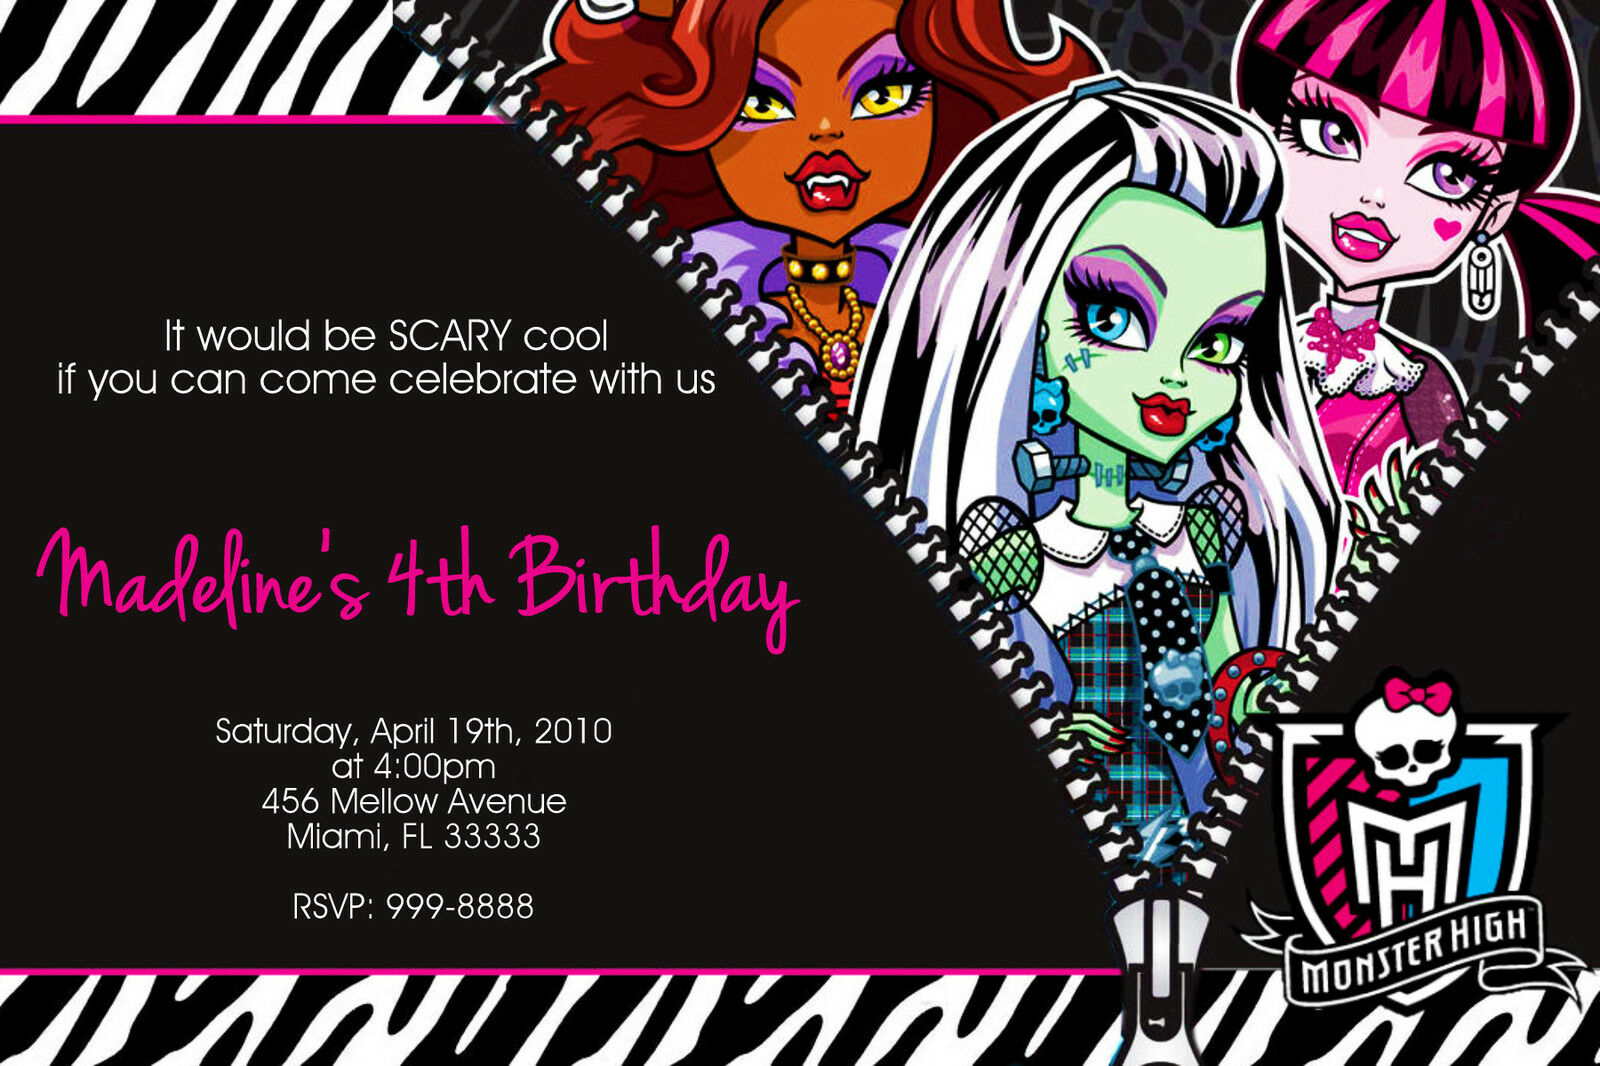 Monster High Invitation Wording with amazing invitations design